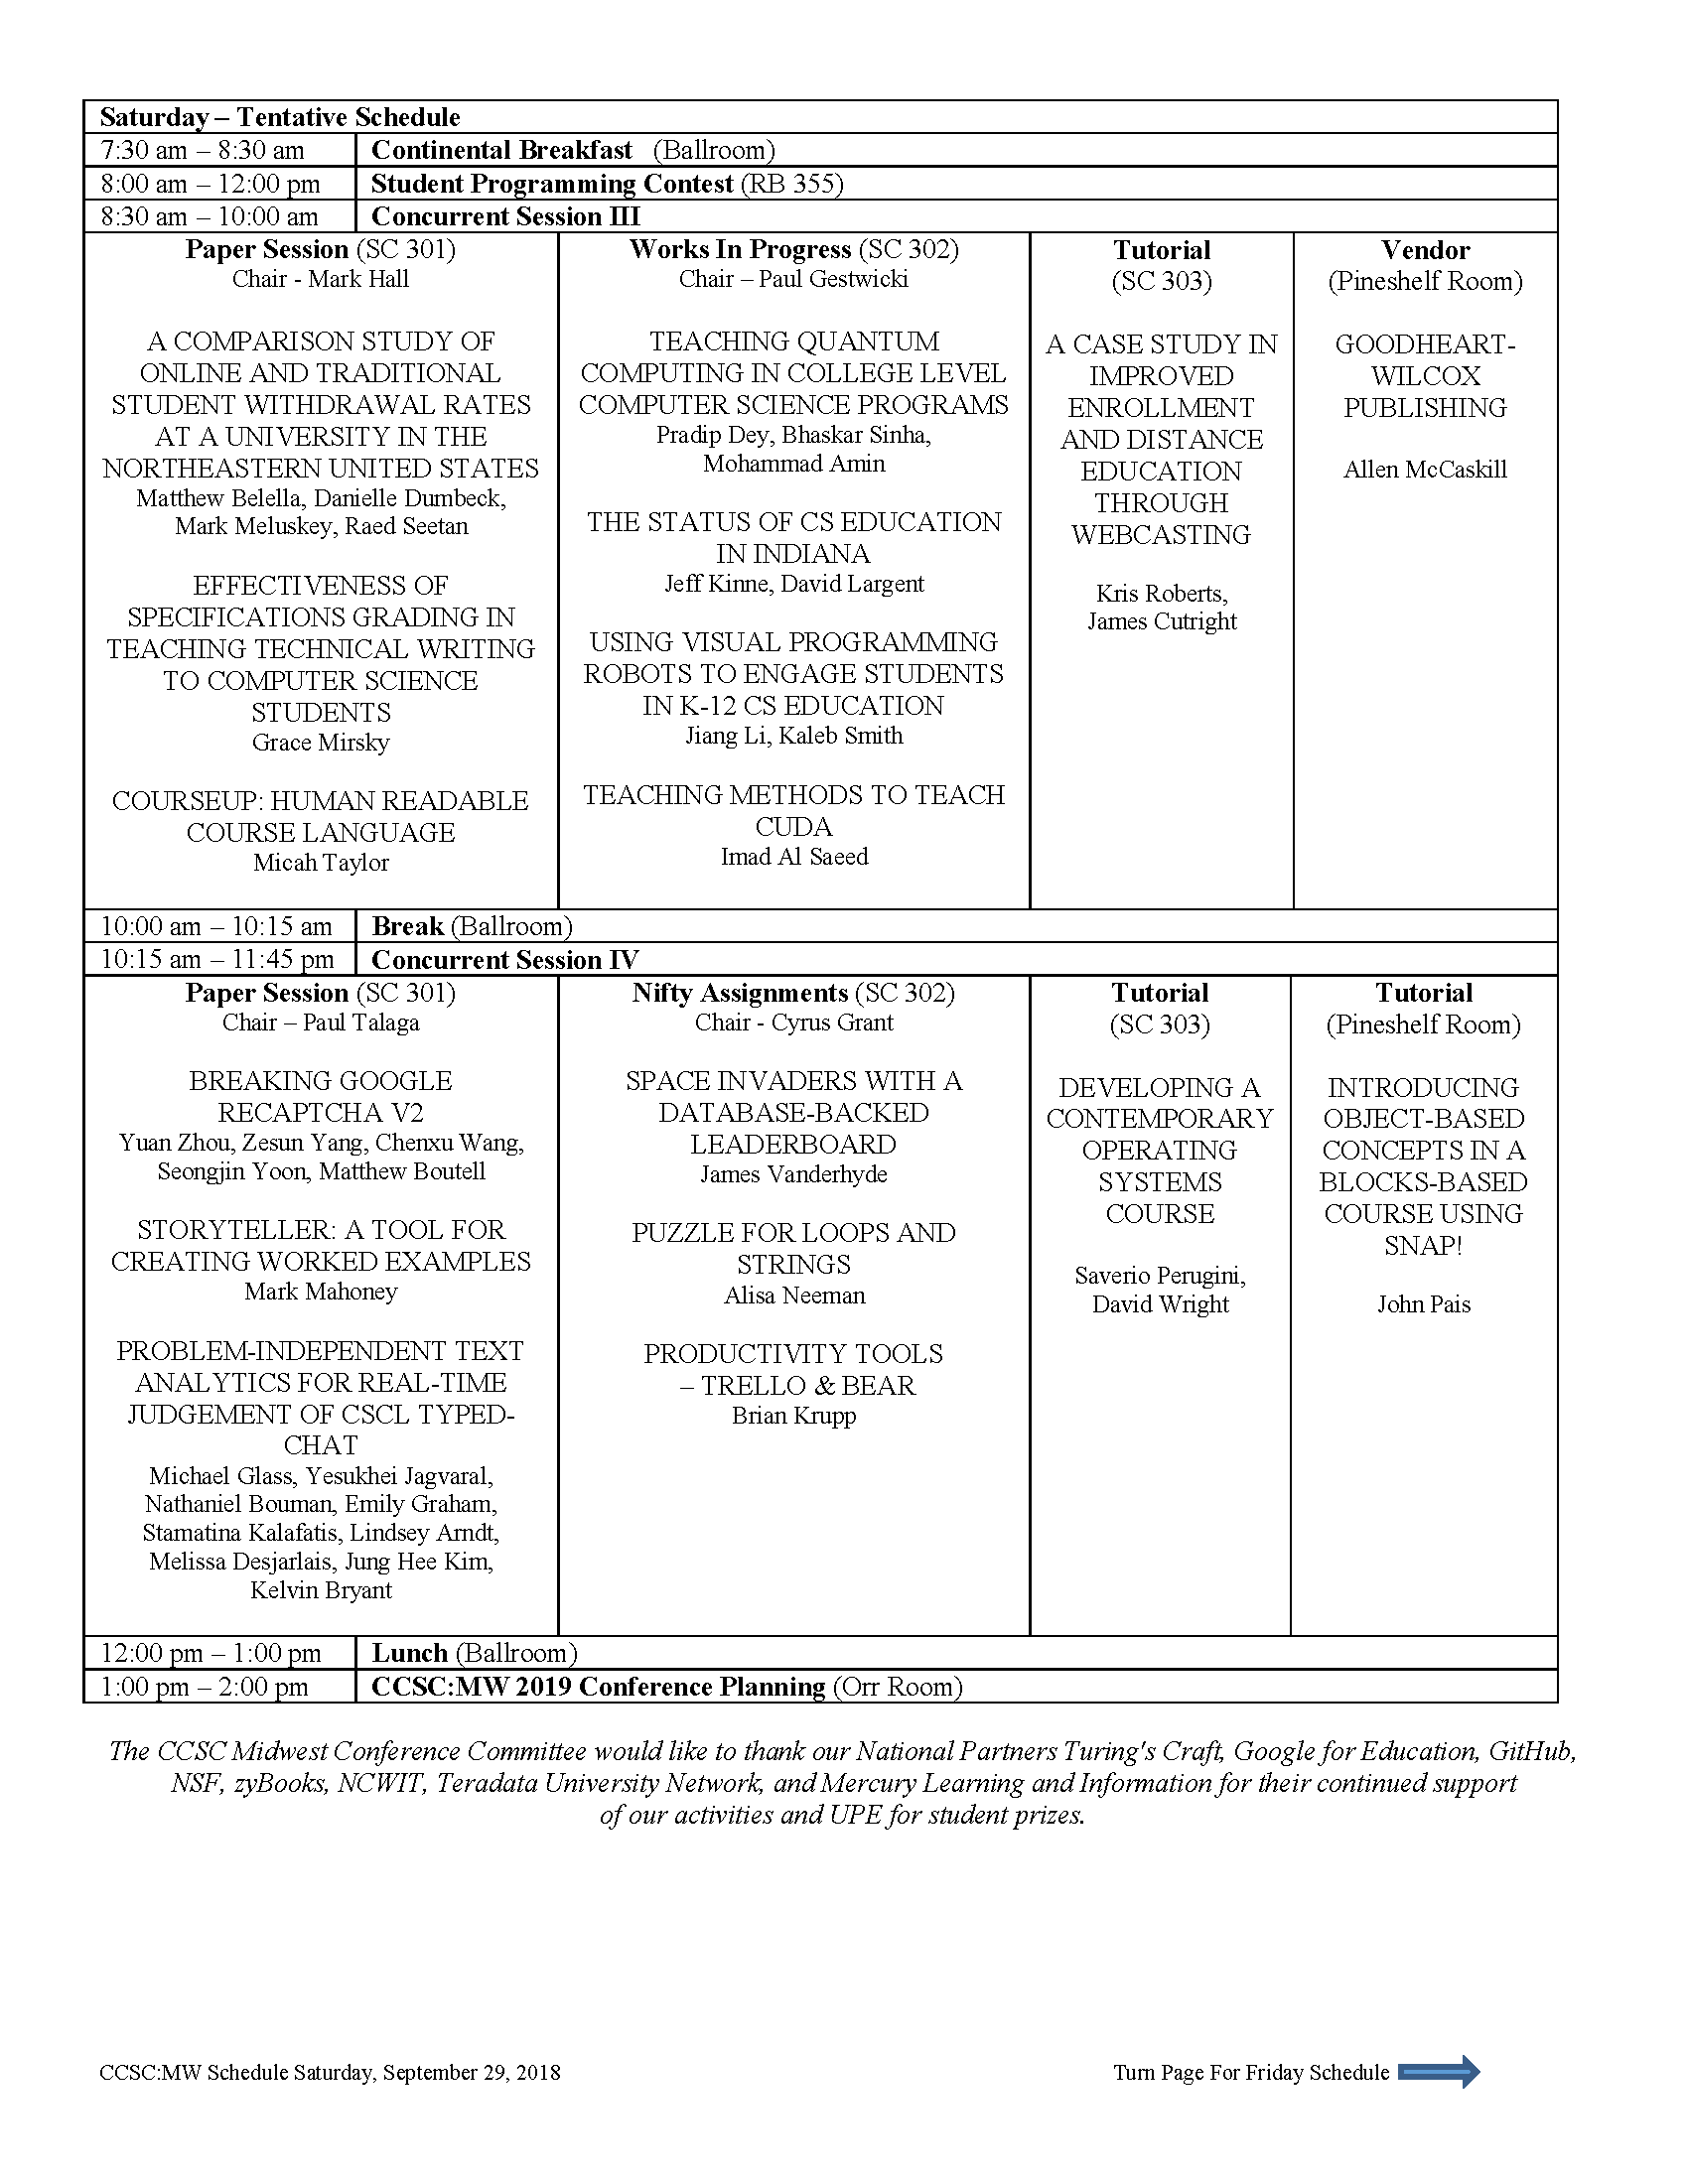 2018_Midwest_Conference_Schedule_September_27_2018_Page_2.png